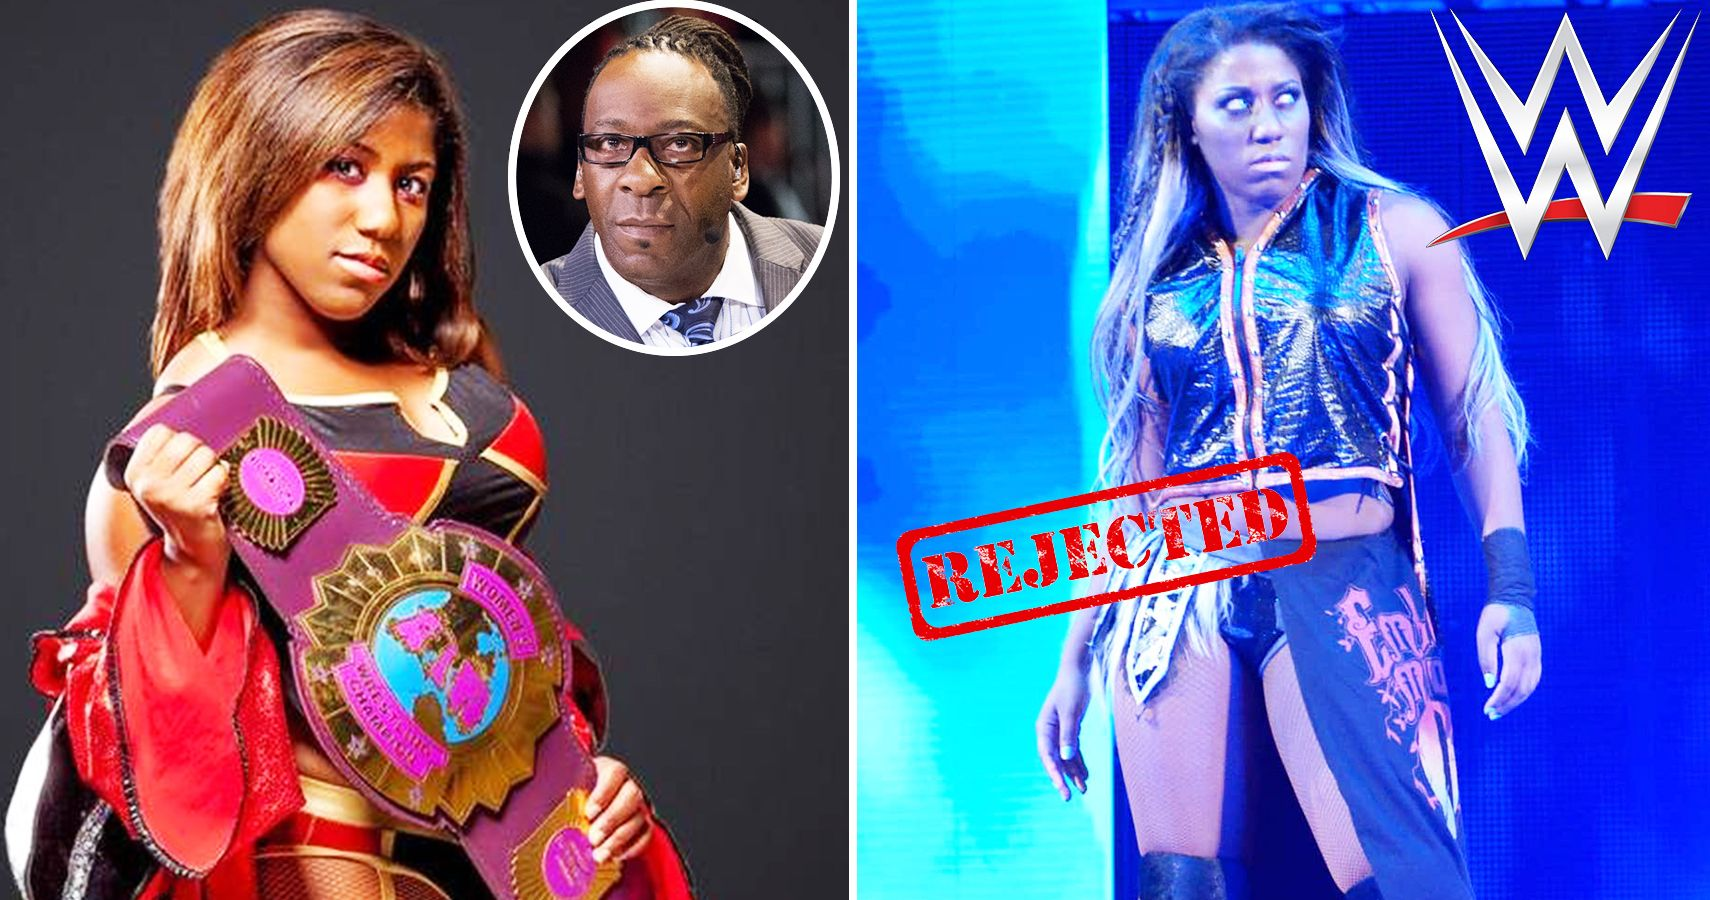 Image result for WWE Booker T and Ember Moon